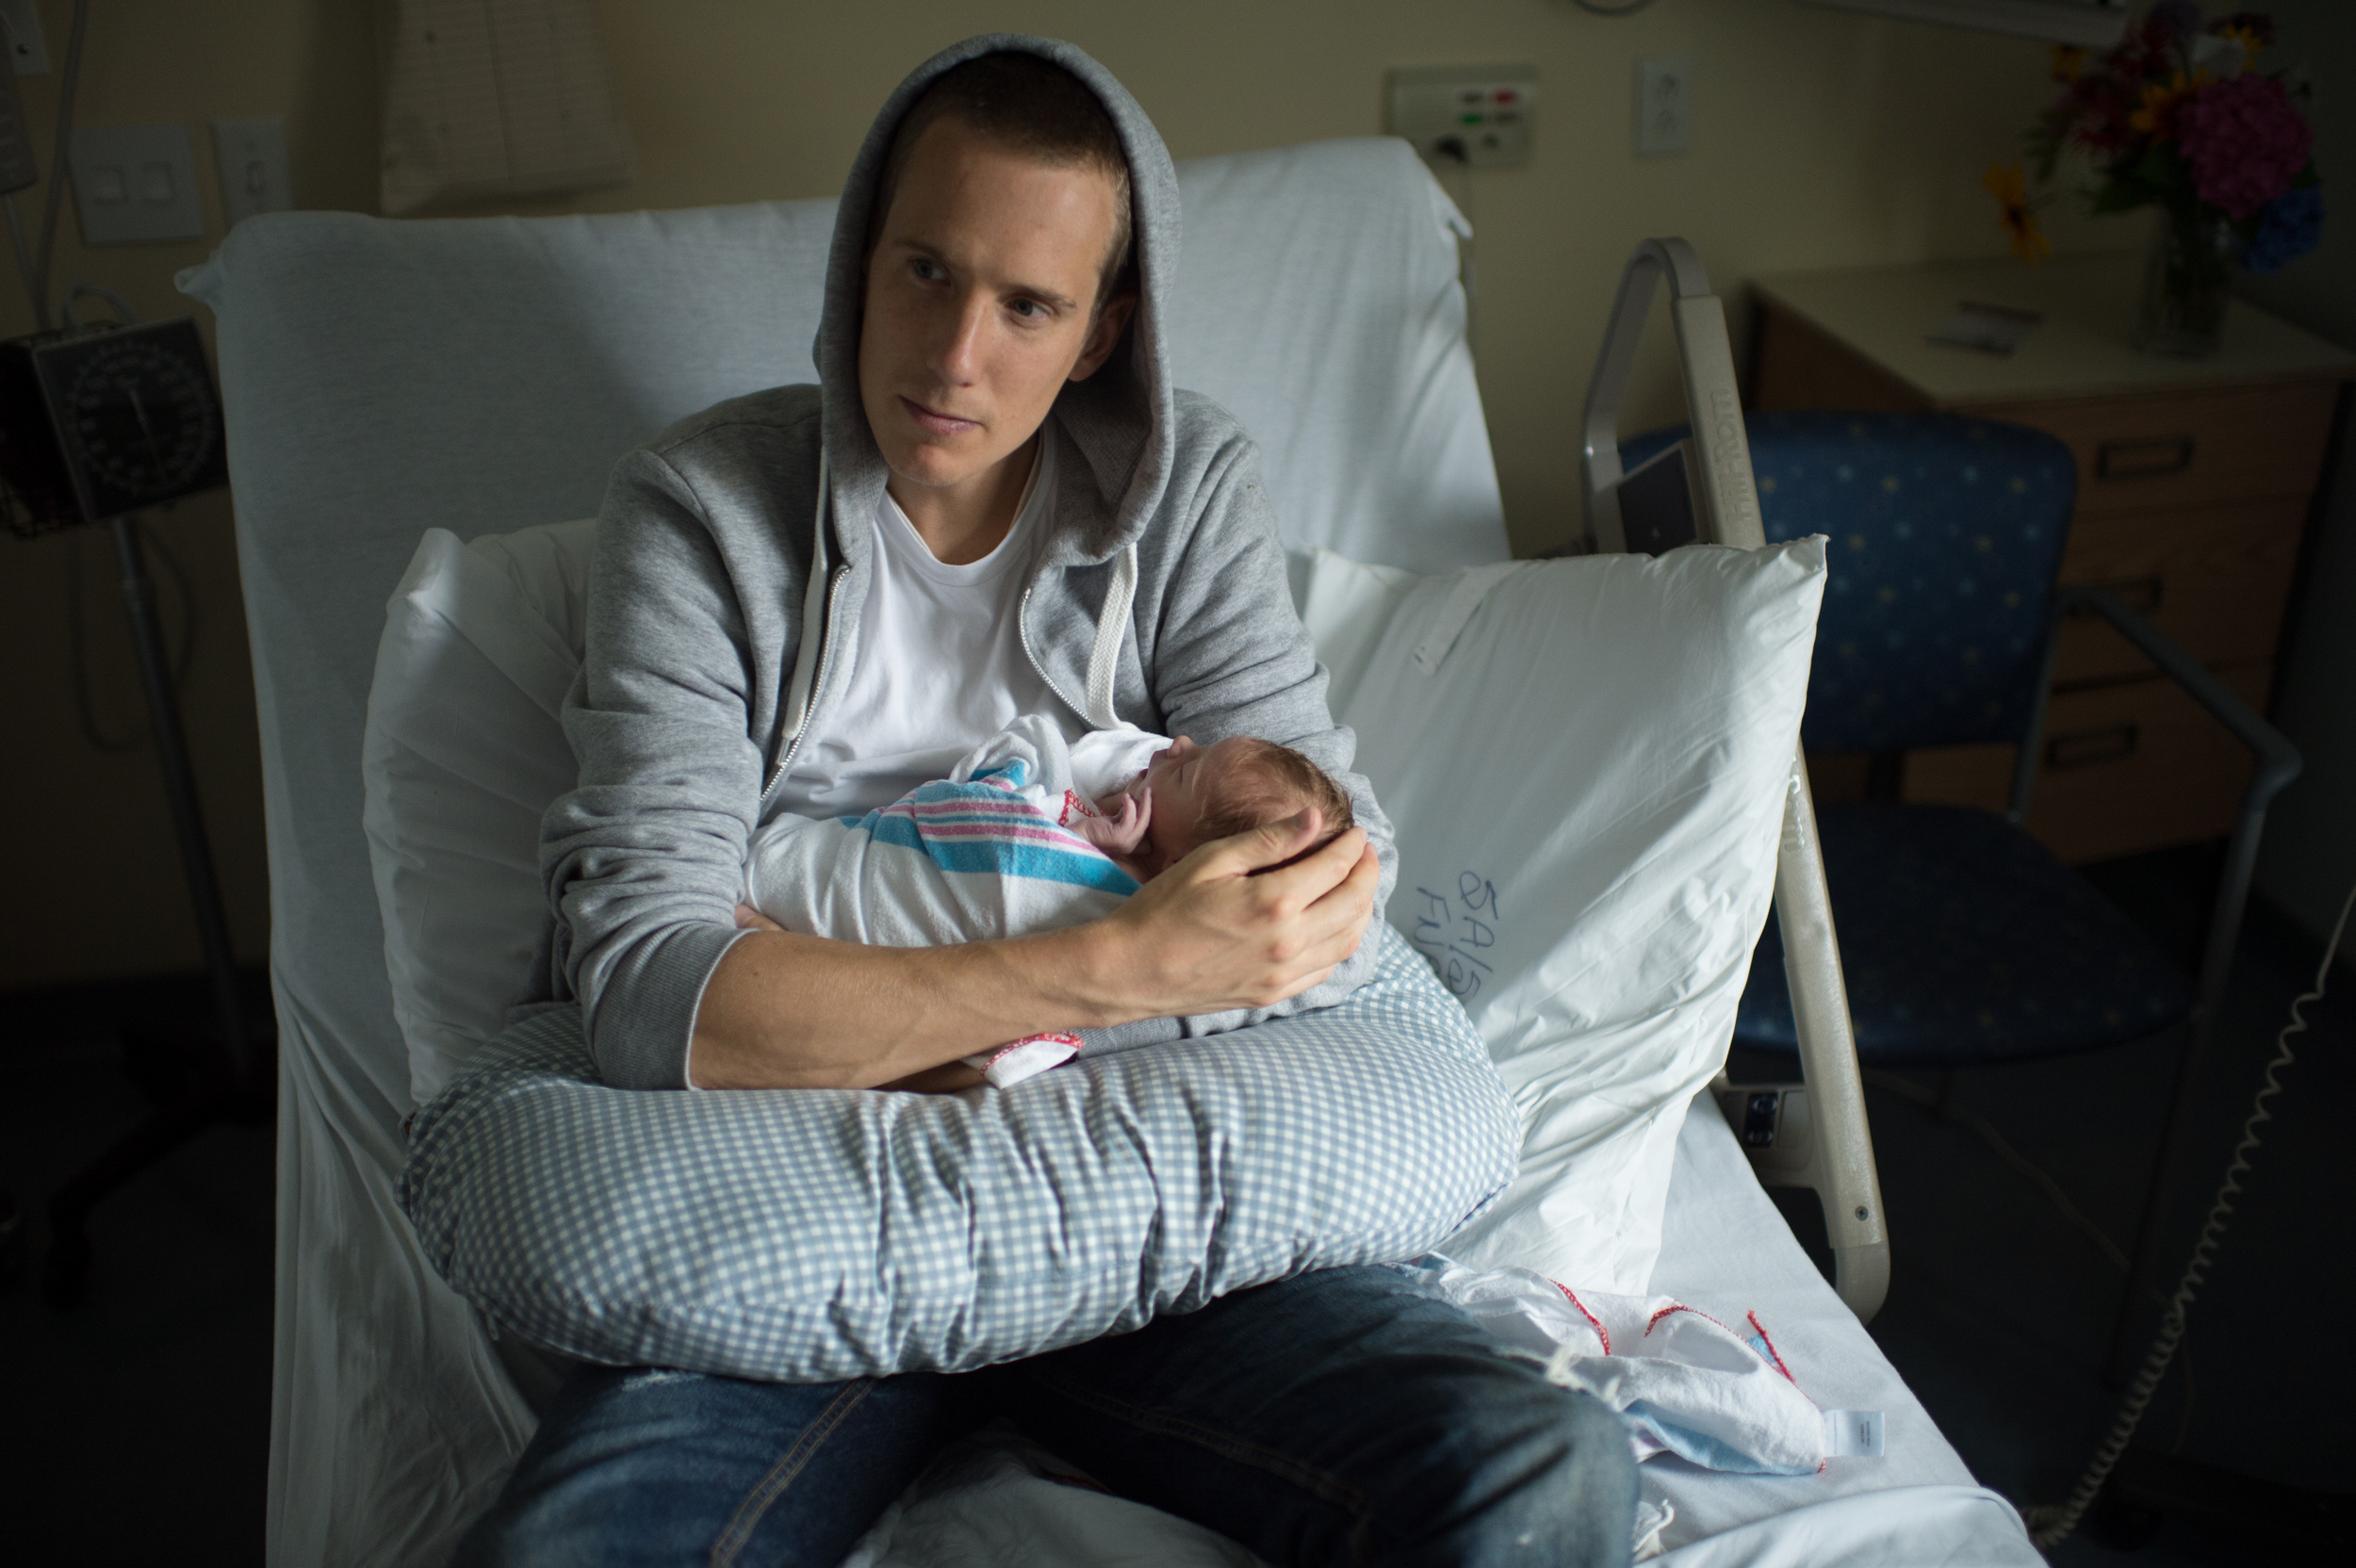 Layton and his new born son Finn. Photo credit:  Jeff Cooke